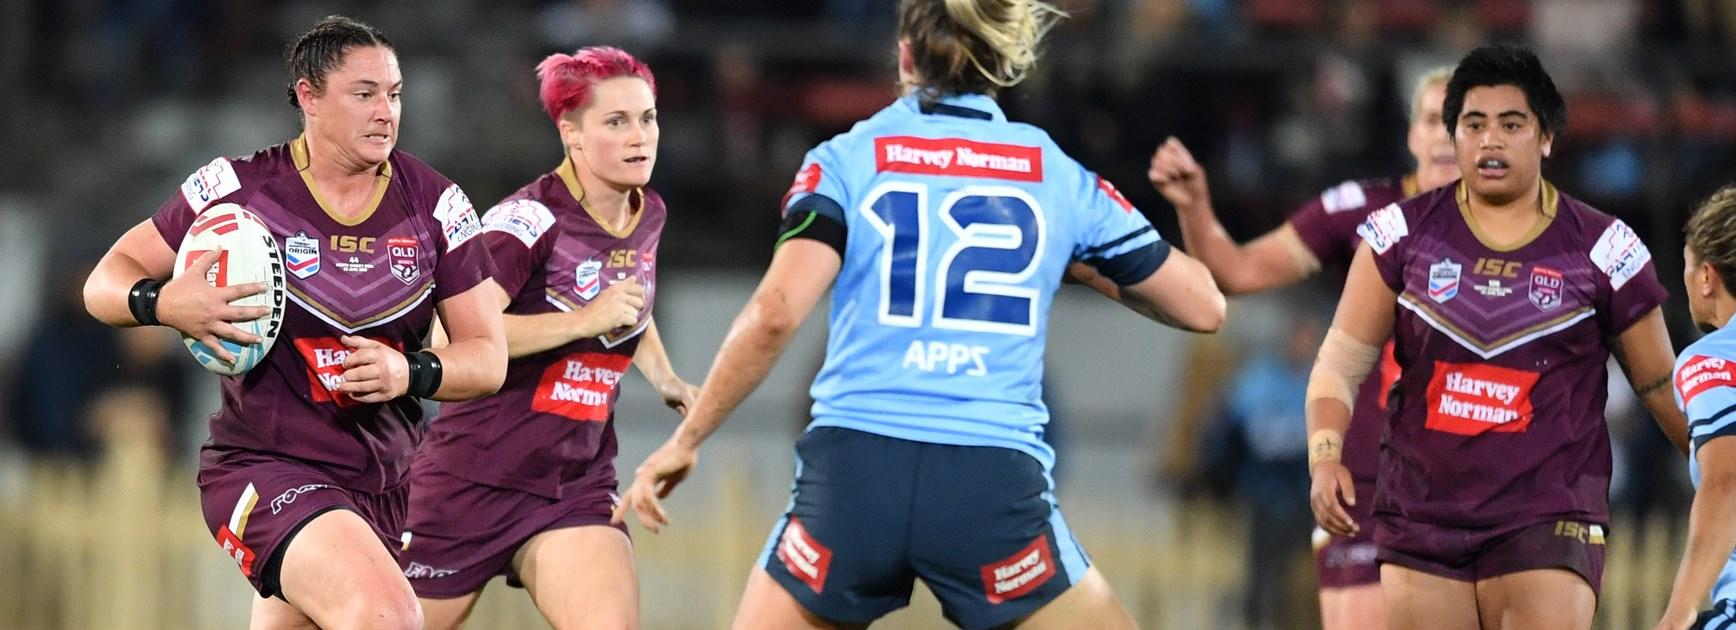 Hancock relishing new era for Women's league